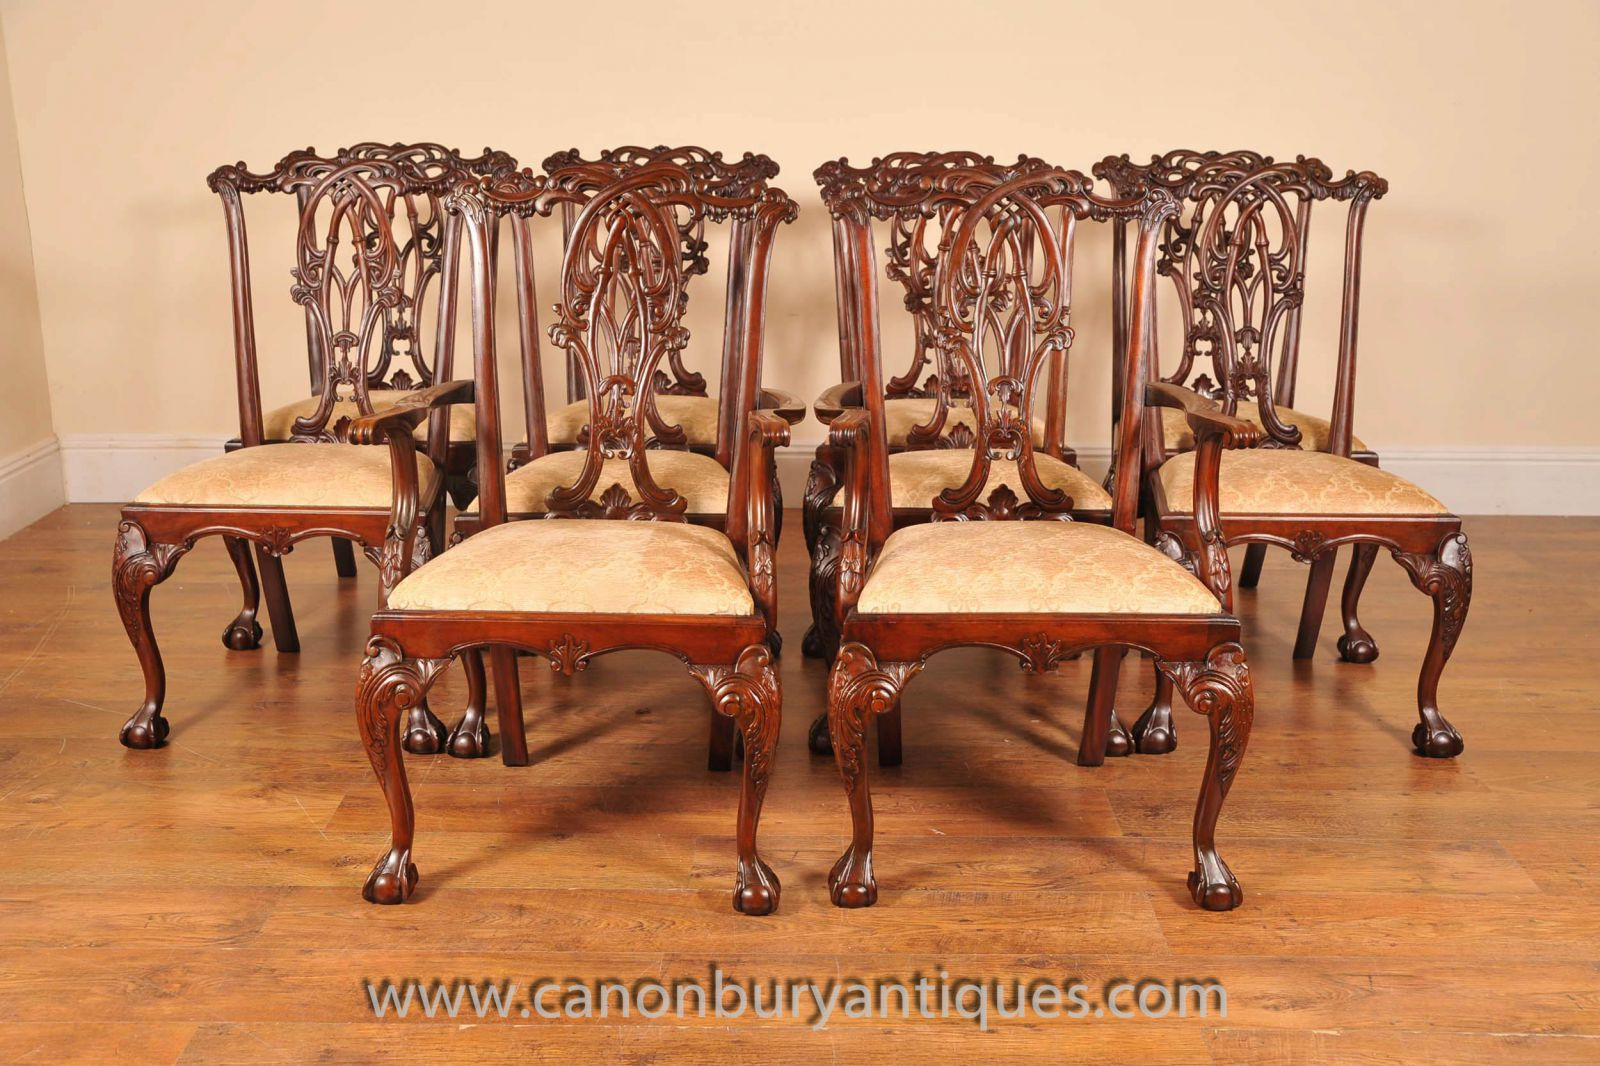 Chippendale Chairs Ball and Claw Feet www_canonburyantiques_com-2